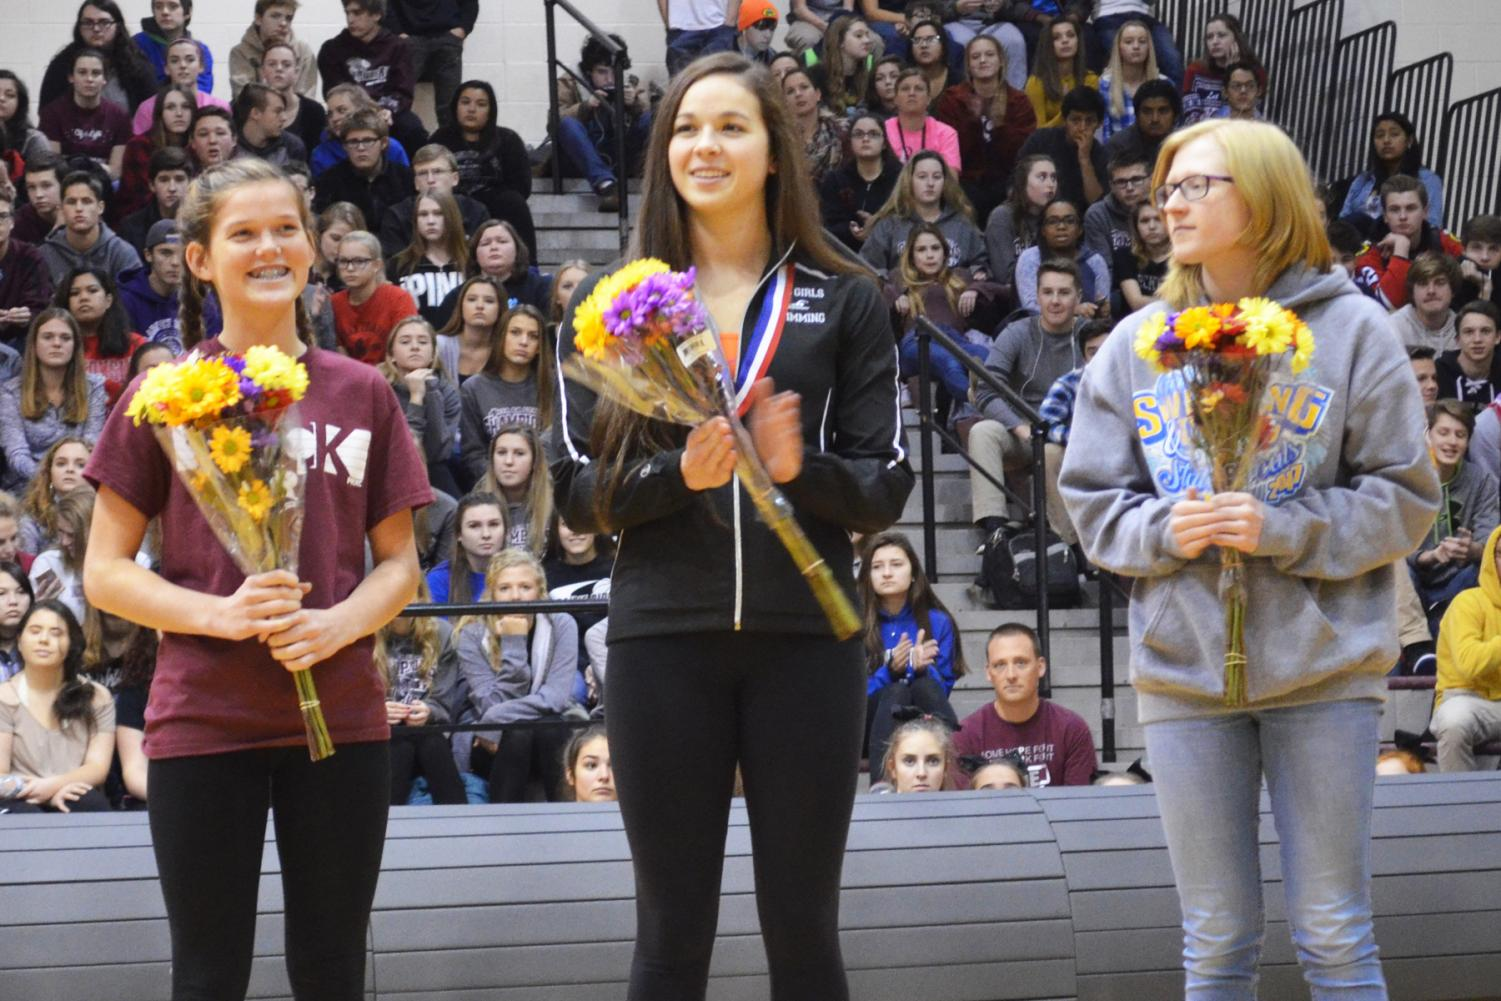 Chelsea Gale, Valerie Tarazi, and Makayla Nietzel stand in recognition for their accomplishments in Cross Country and Swimming at the Fall Honors Assembly on December 1, 2017.